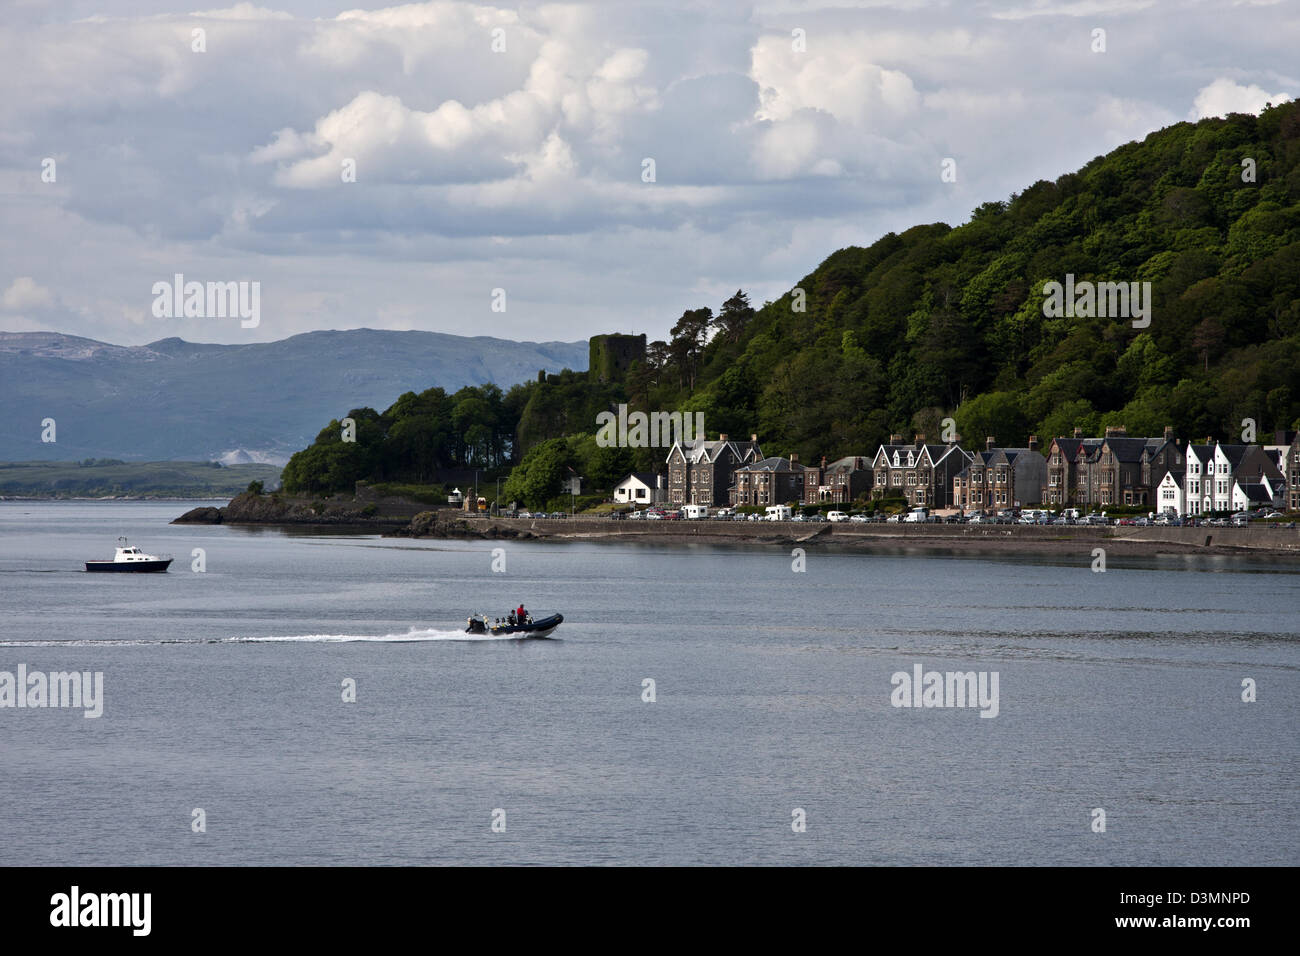 Oban, Scotland, The waterfront buildings along the esplanade sit under an imposing hill facing the harbour. - Stock Image